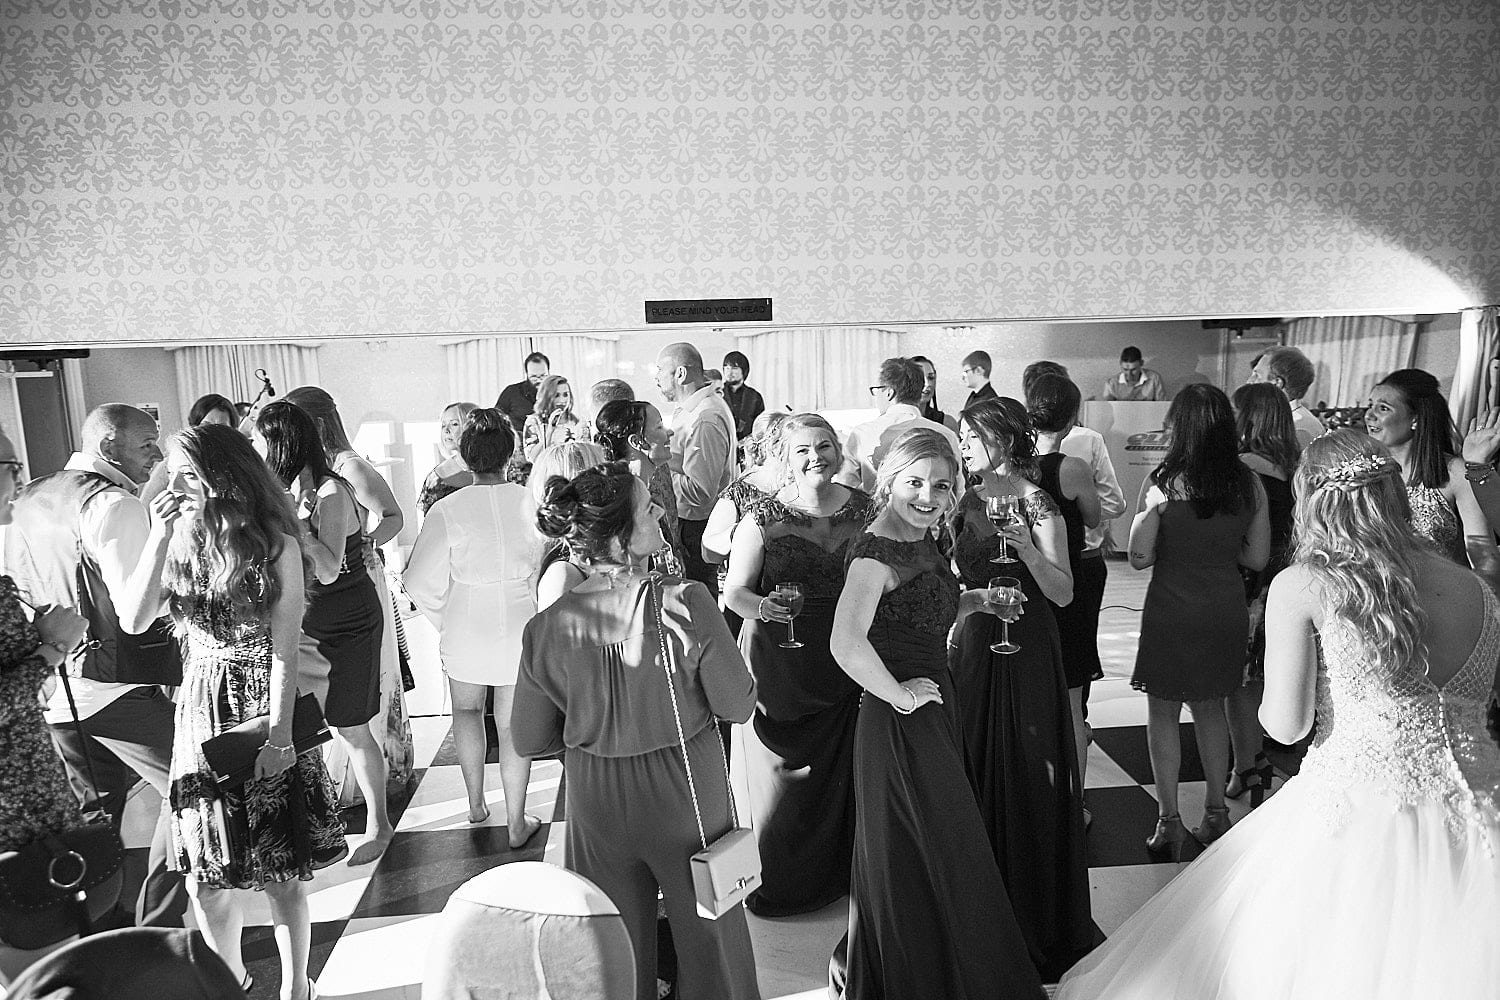 An overview of friends and family dancing at a wedding reception.